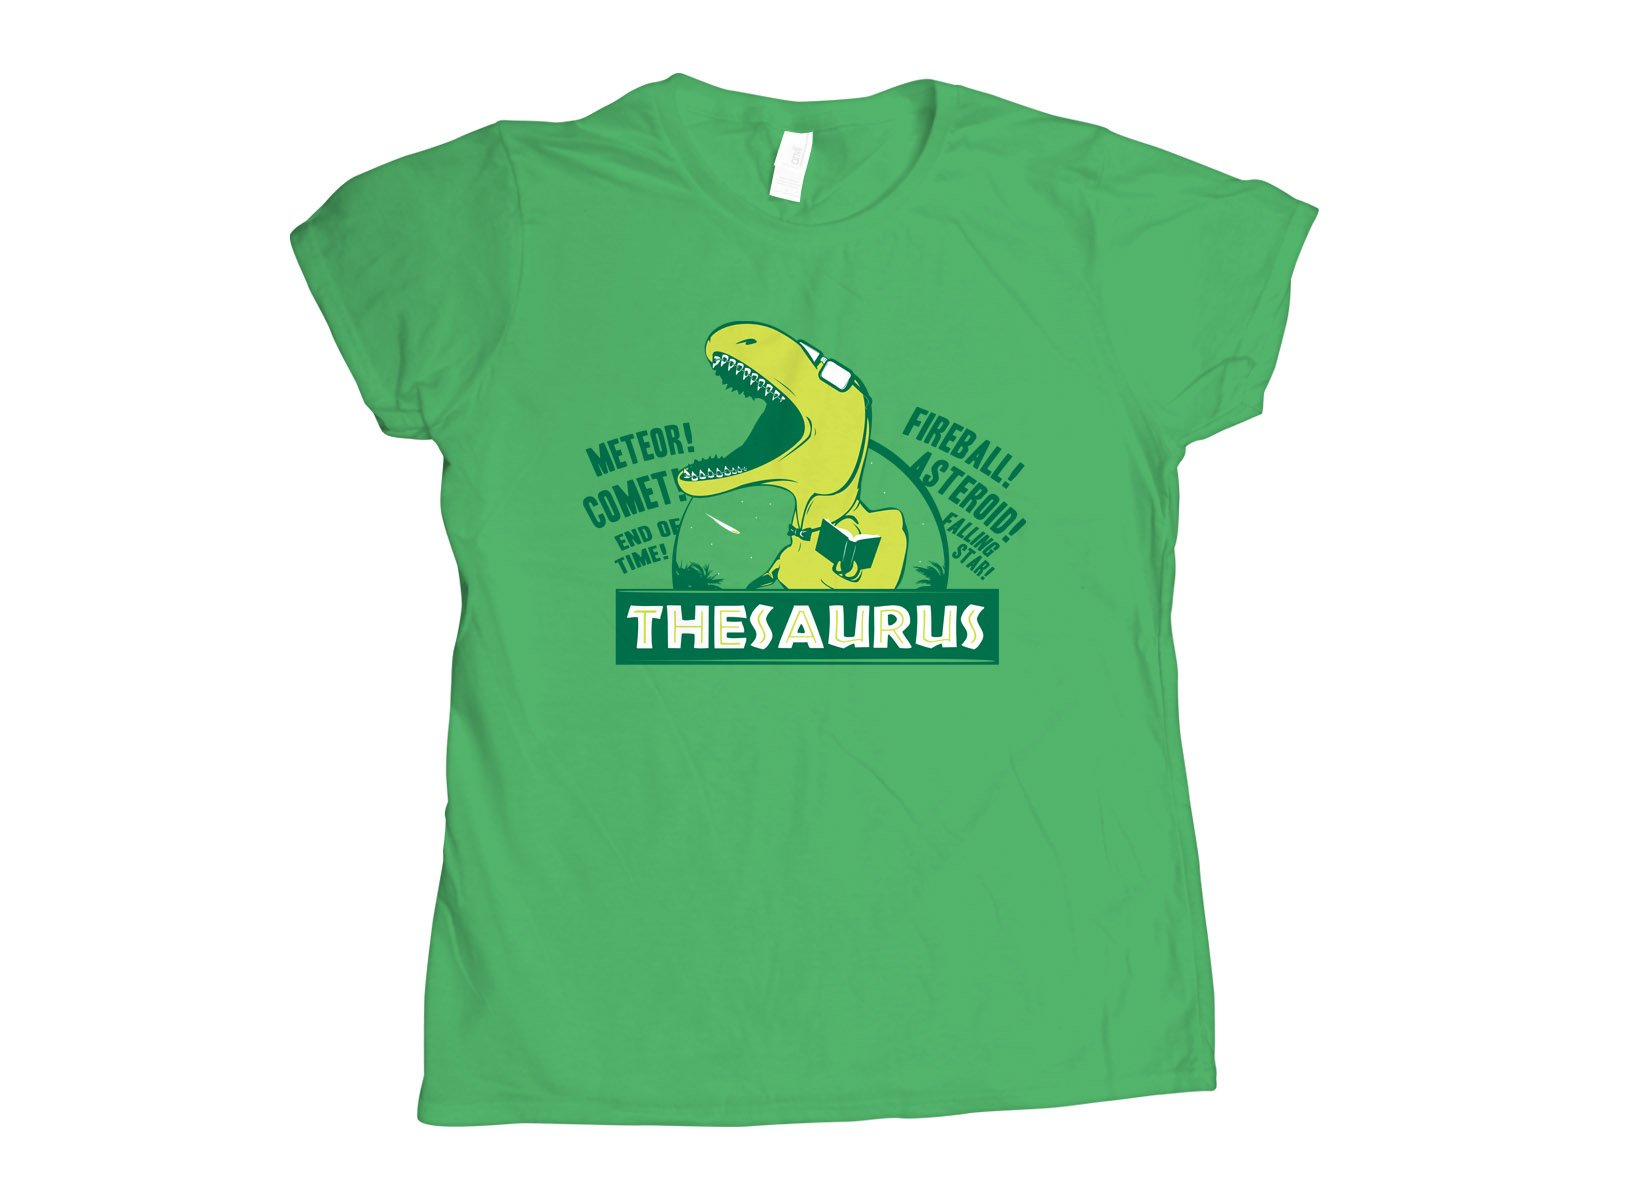 Thesaurus on Womens T-Shirt